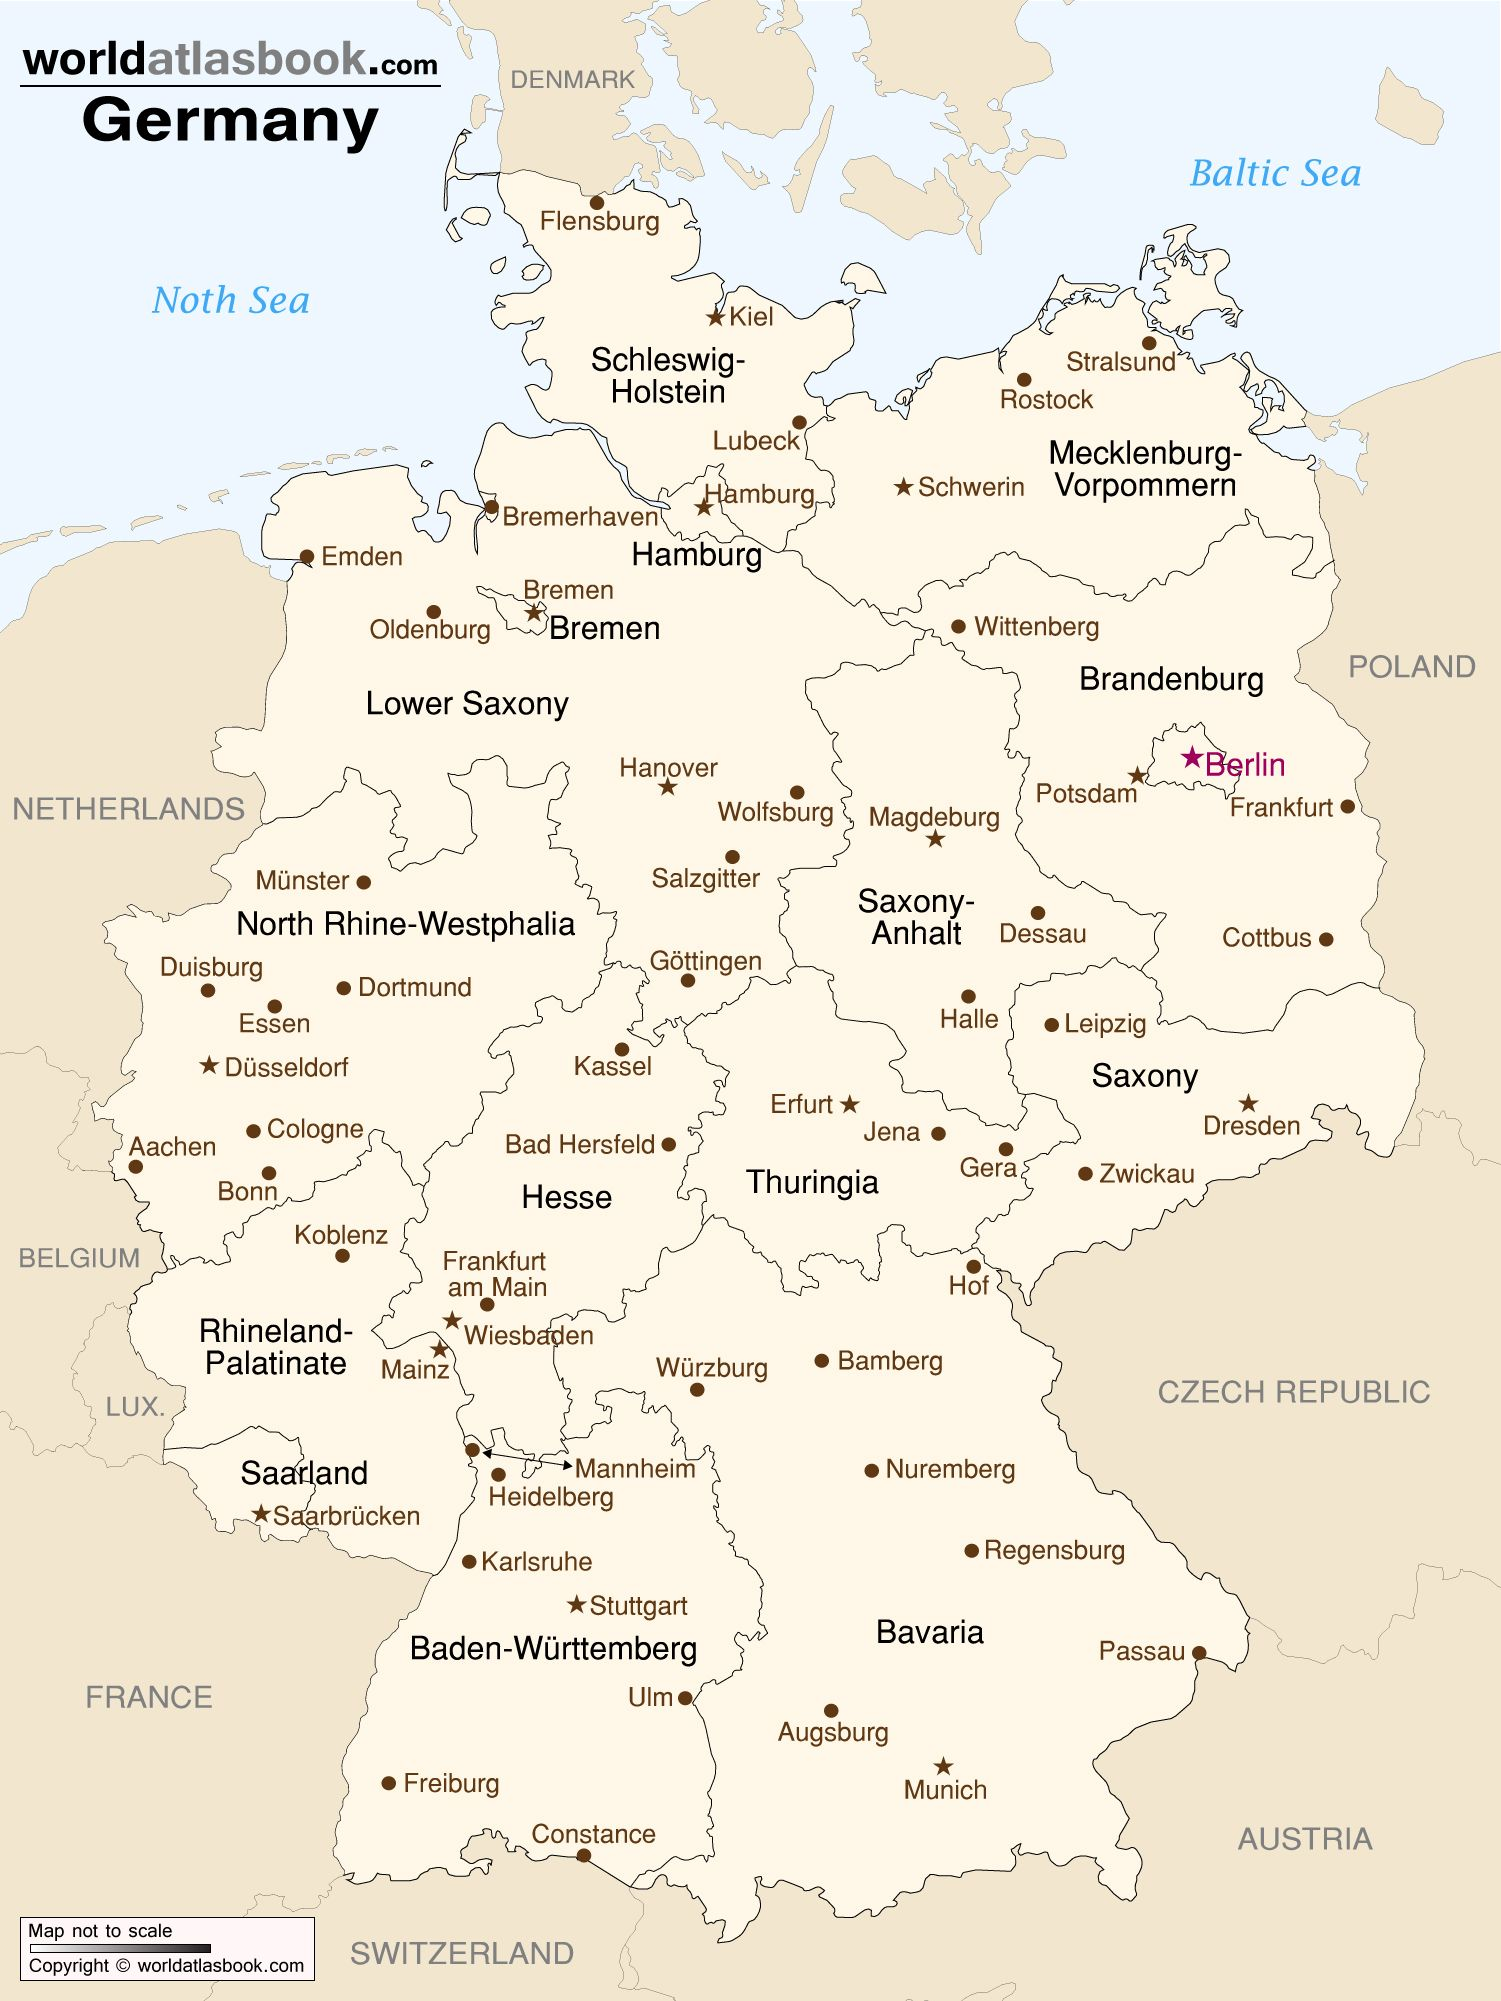 Germany Cities Map Printable Jpg 1501 2001 Germany Map Germany Medieval Germany